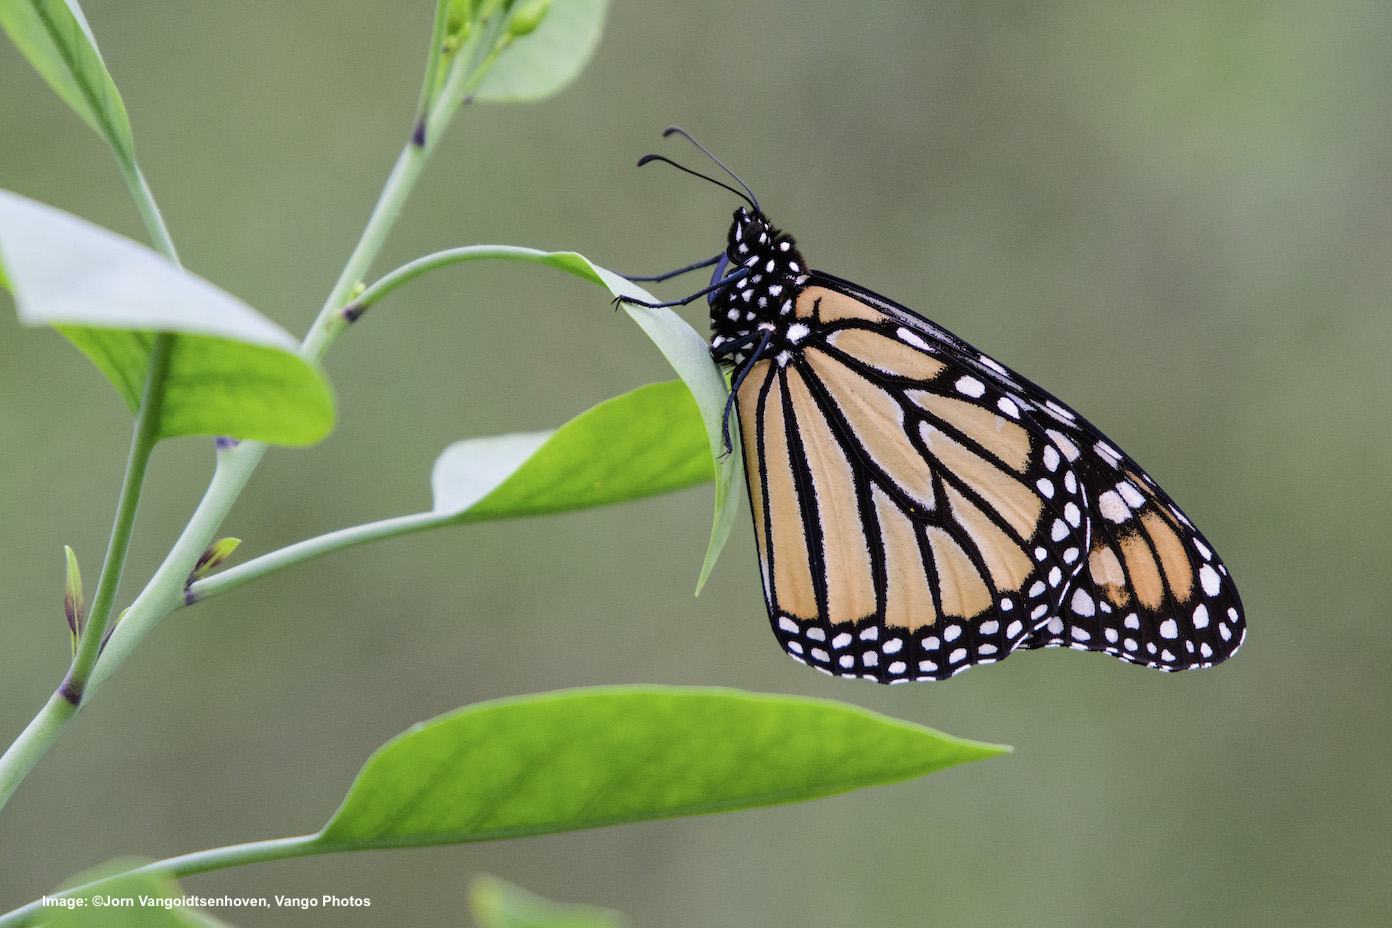 THIS IS A MONARCH BUTTERFLY. THE SPECIES IS IN PETITION TO THE U.S.FISH AND WILDLIFE SERVICE TO BE ADDED TO THE ENDANGERED SPECIES LIST. IMAGE: ©Jorn Vangoidtsenhoven, Vango Photos